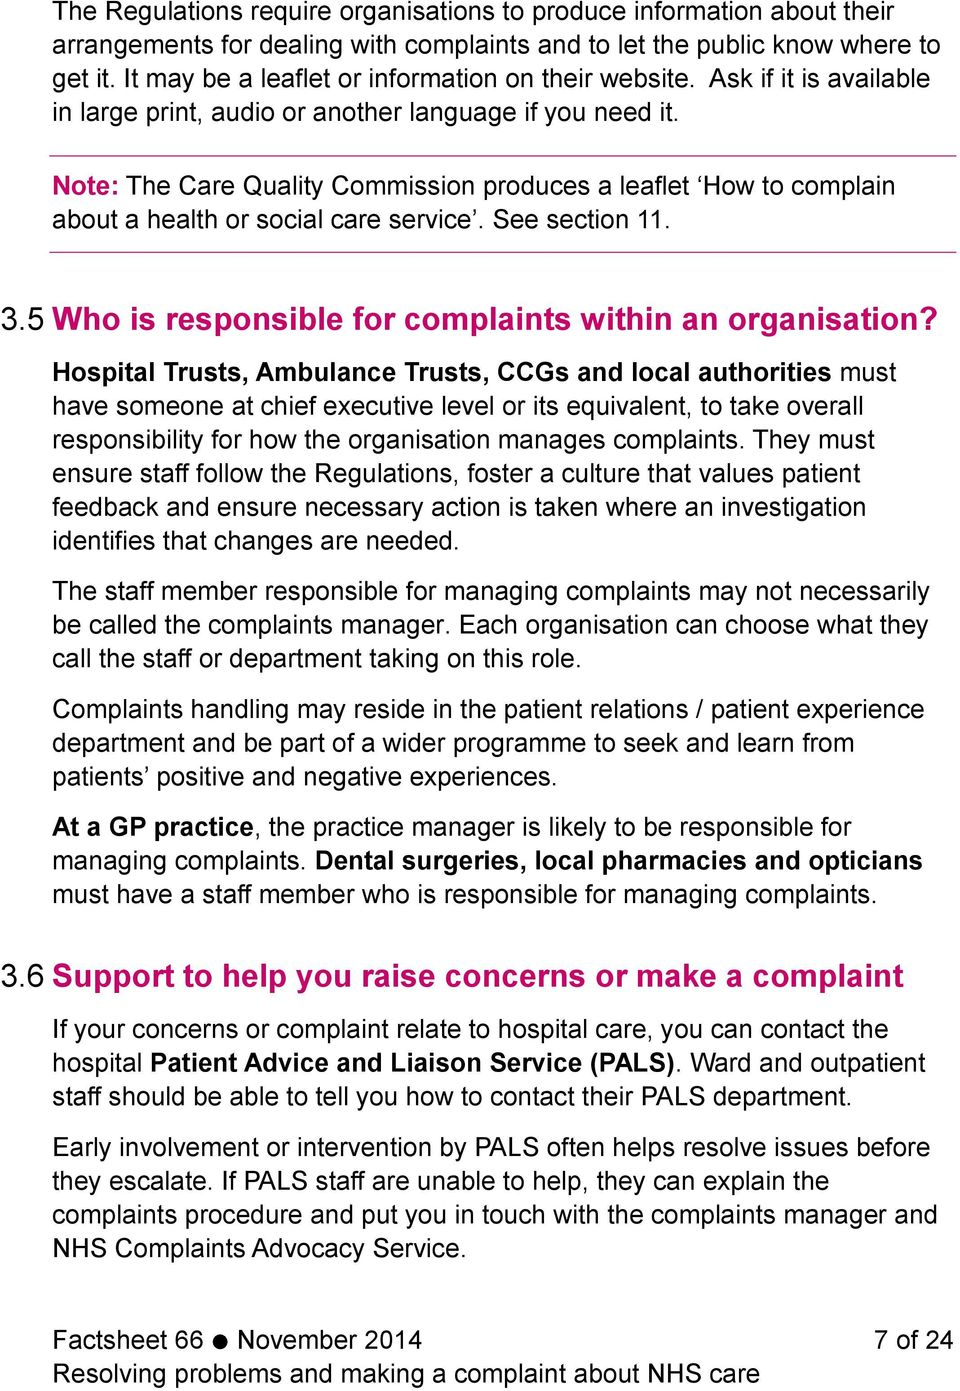 Note: The Care Quality Commission produces a leaflet How to complain about a health or social care service. See section 11. 3.5 Who is responsible for complaints within an organisation?